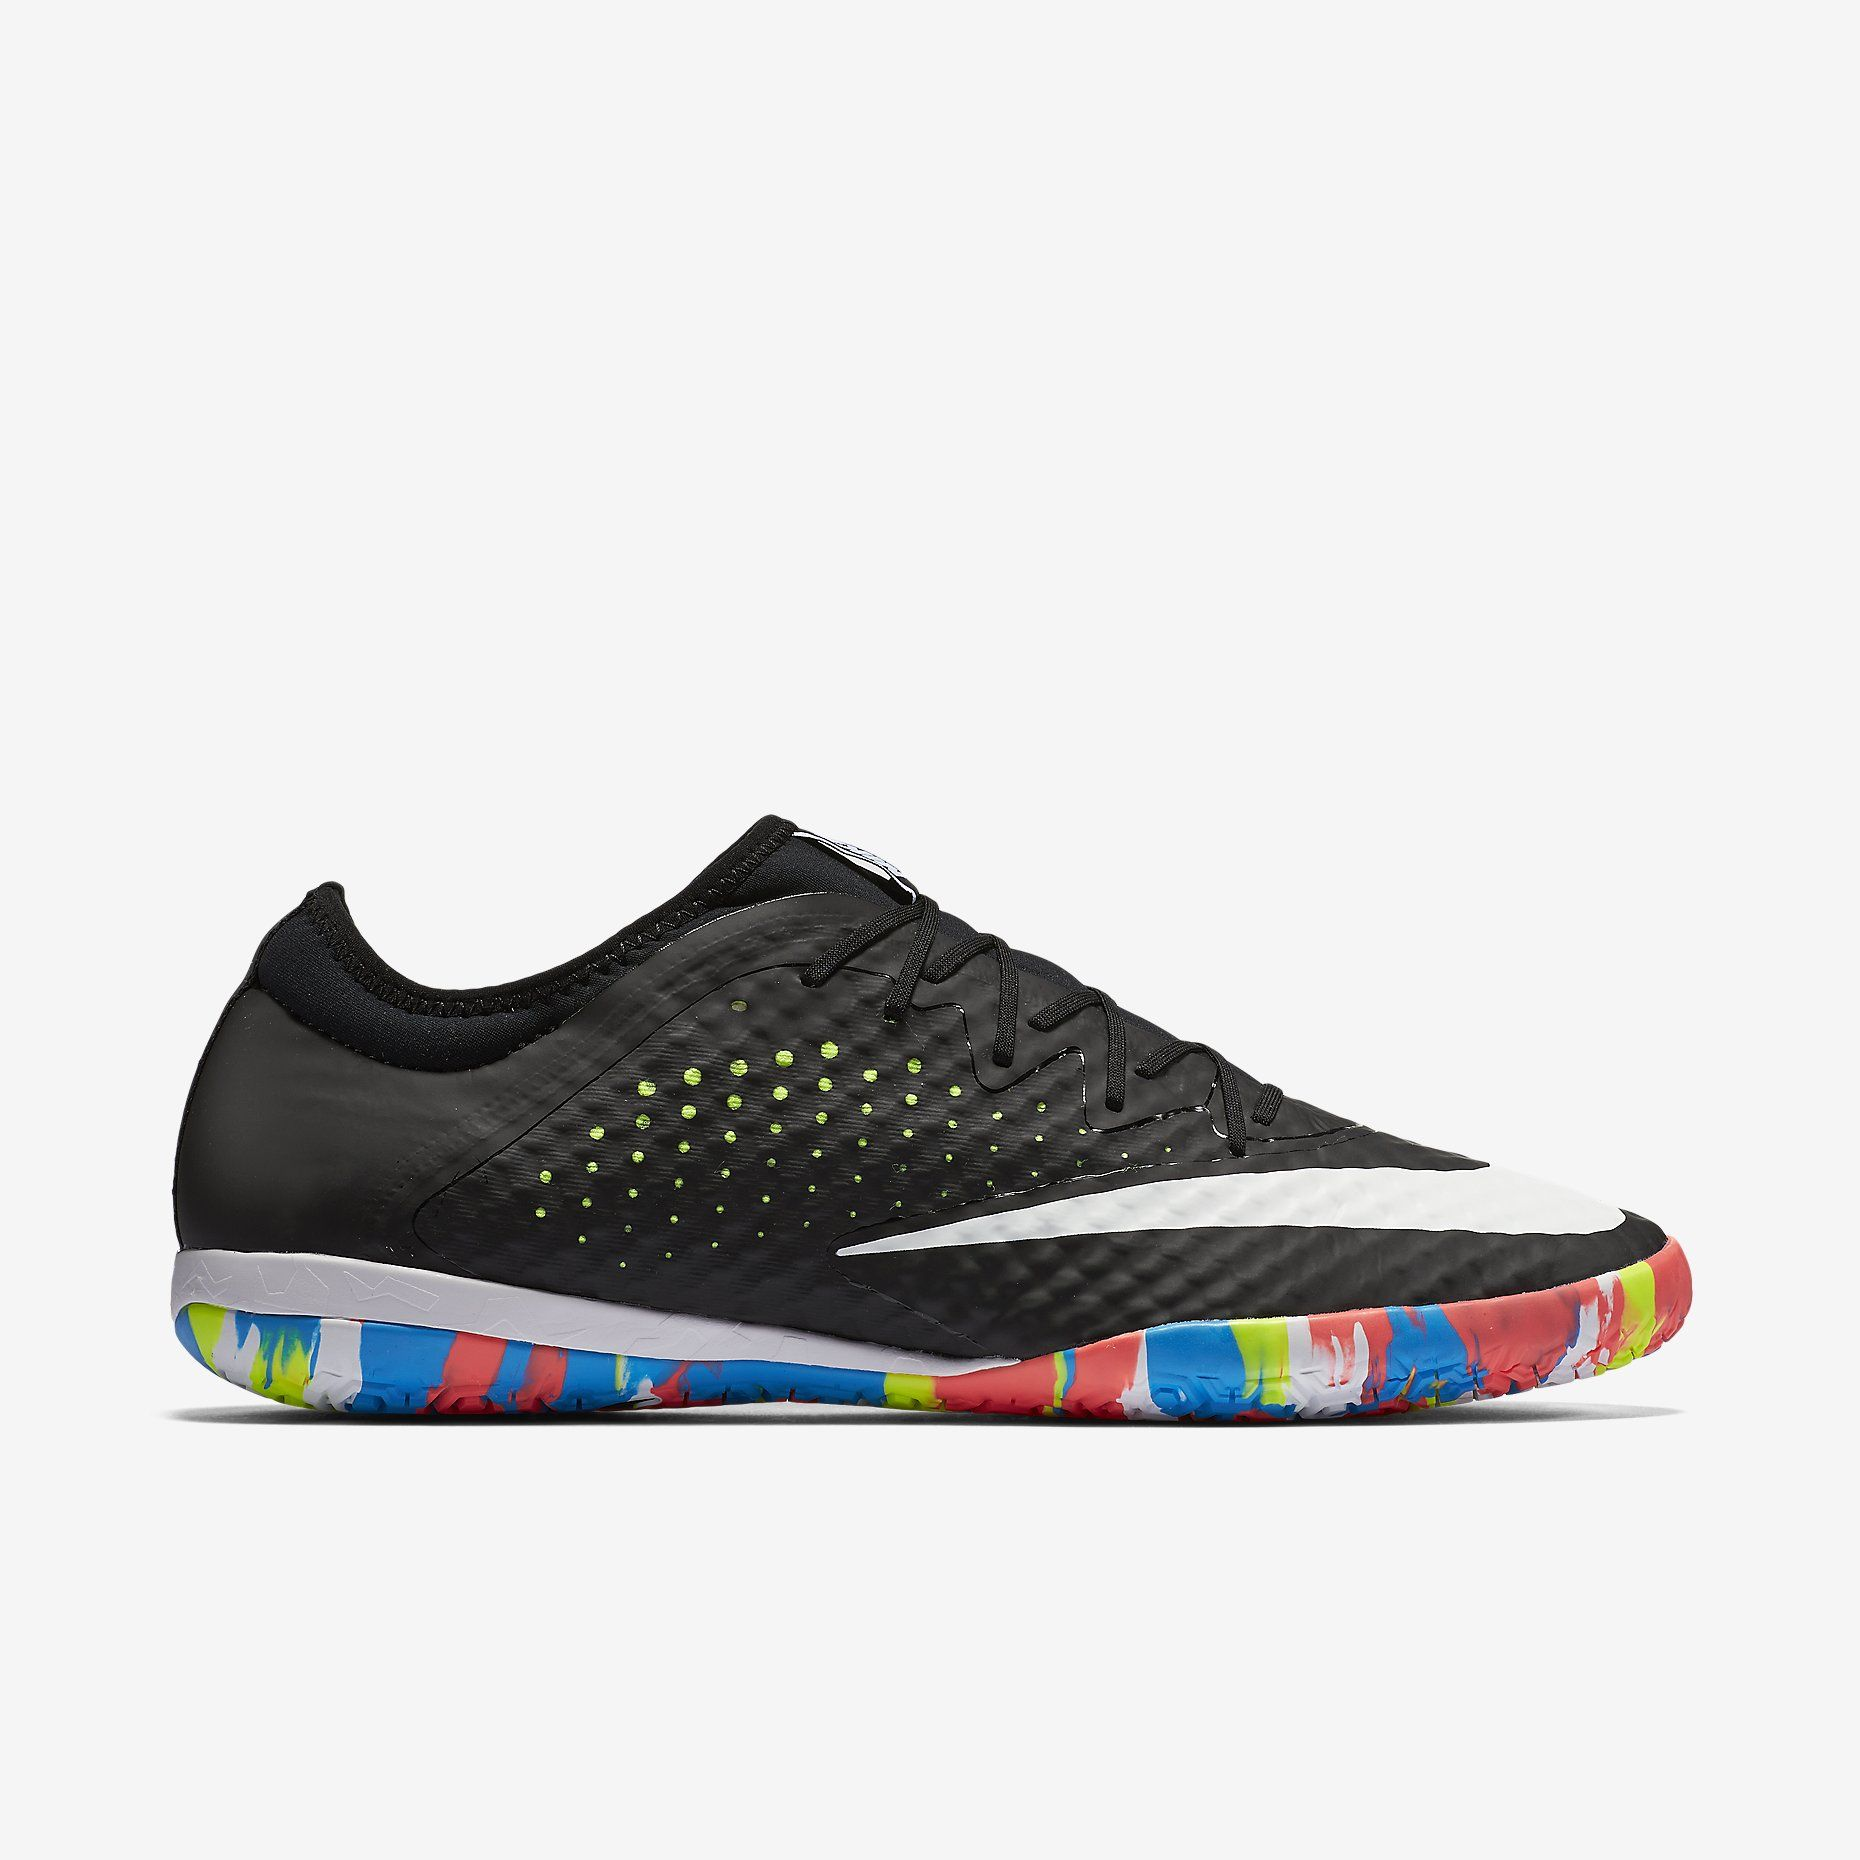 buy online f28a6 83e17 ... inexpensive nike mercurialx finale street mens indoor competition soccer  shoe. f7d88 d51cc